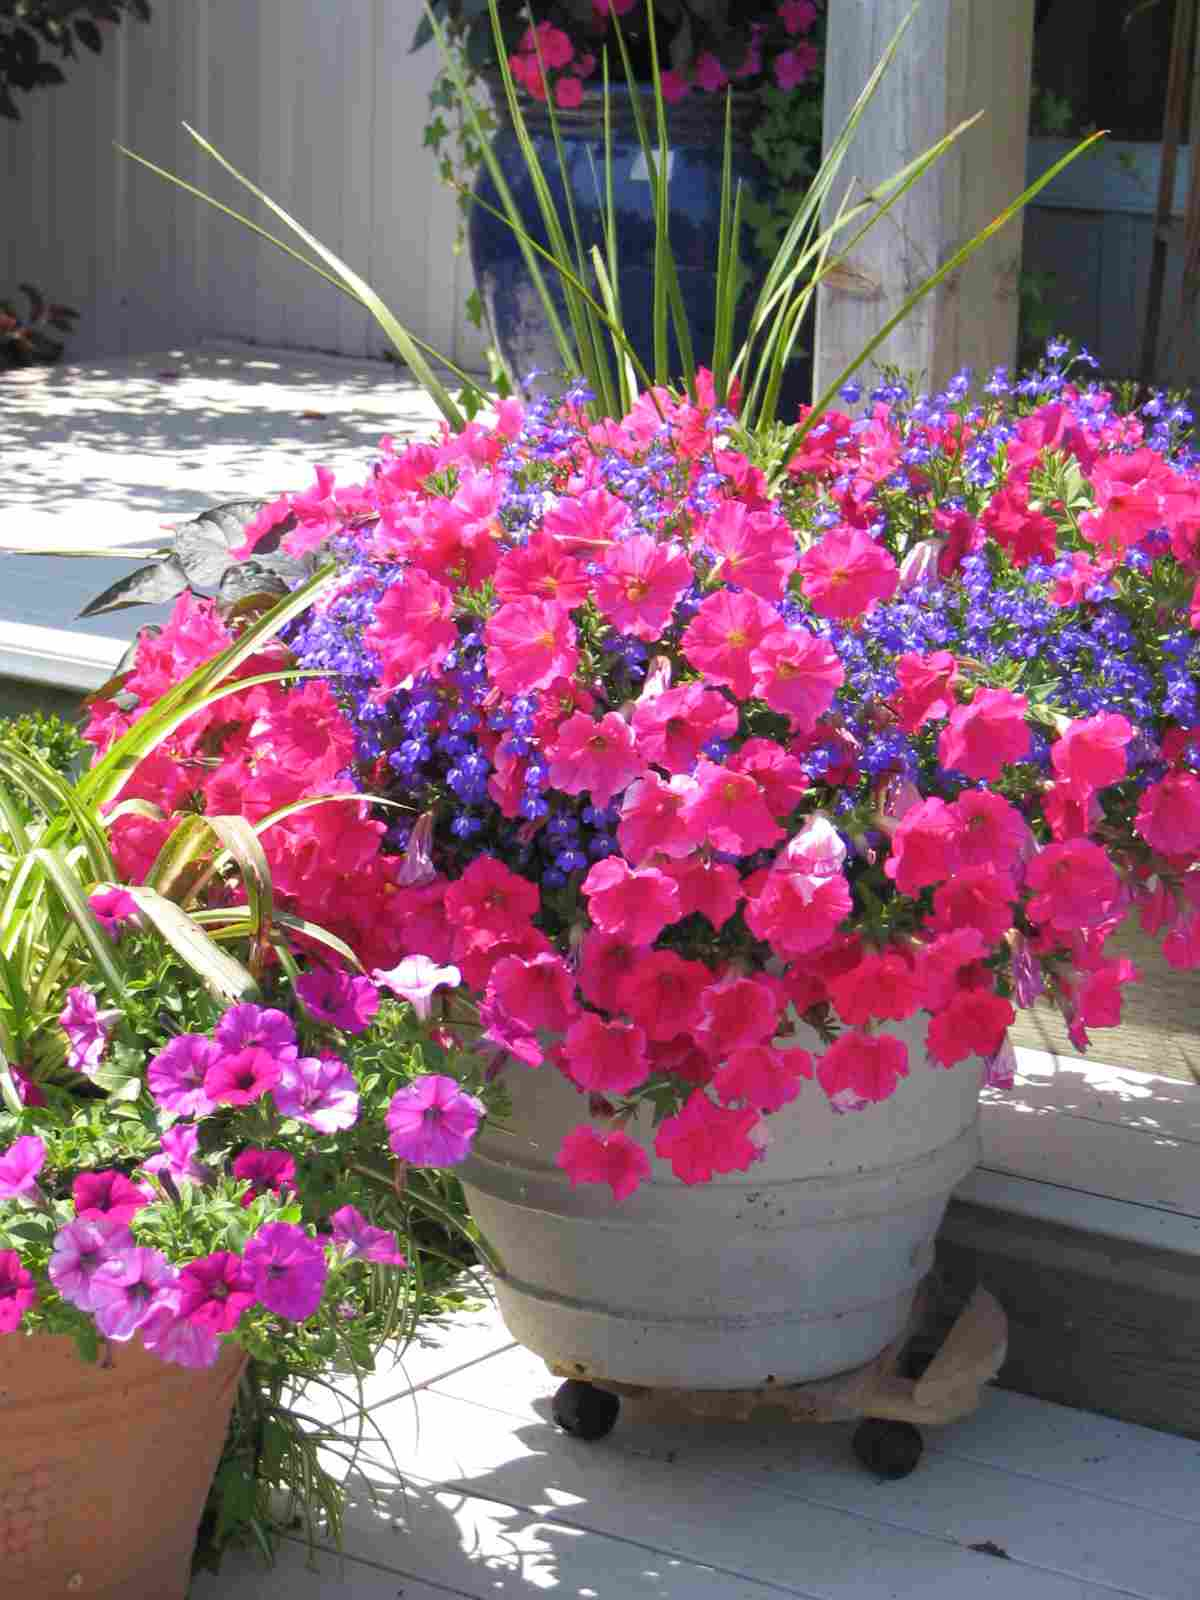 Poetry Bowl of Petunias  Bread Crumbs  Cold Gray